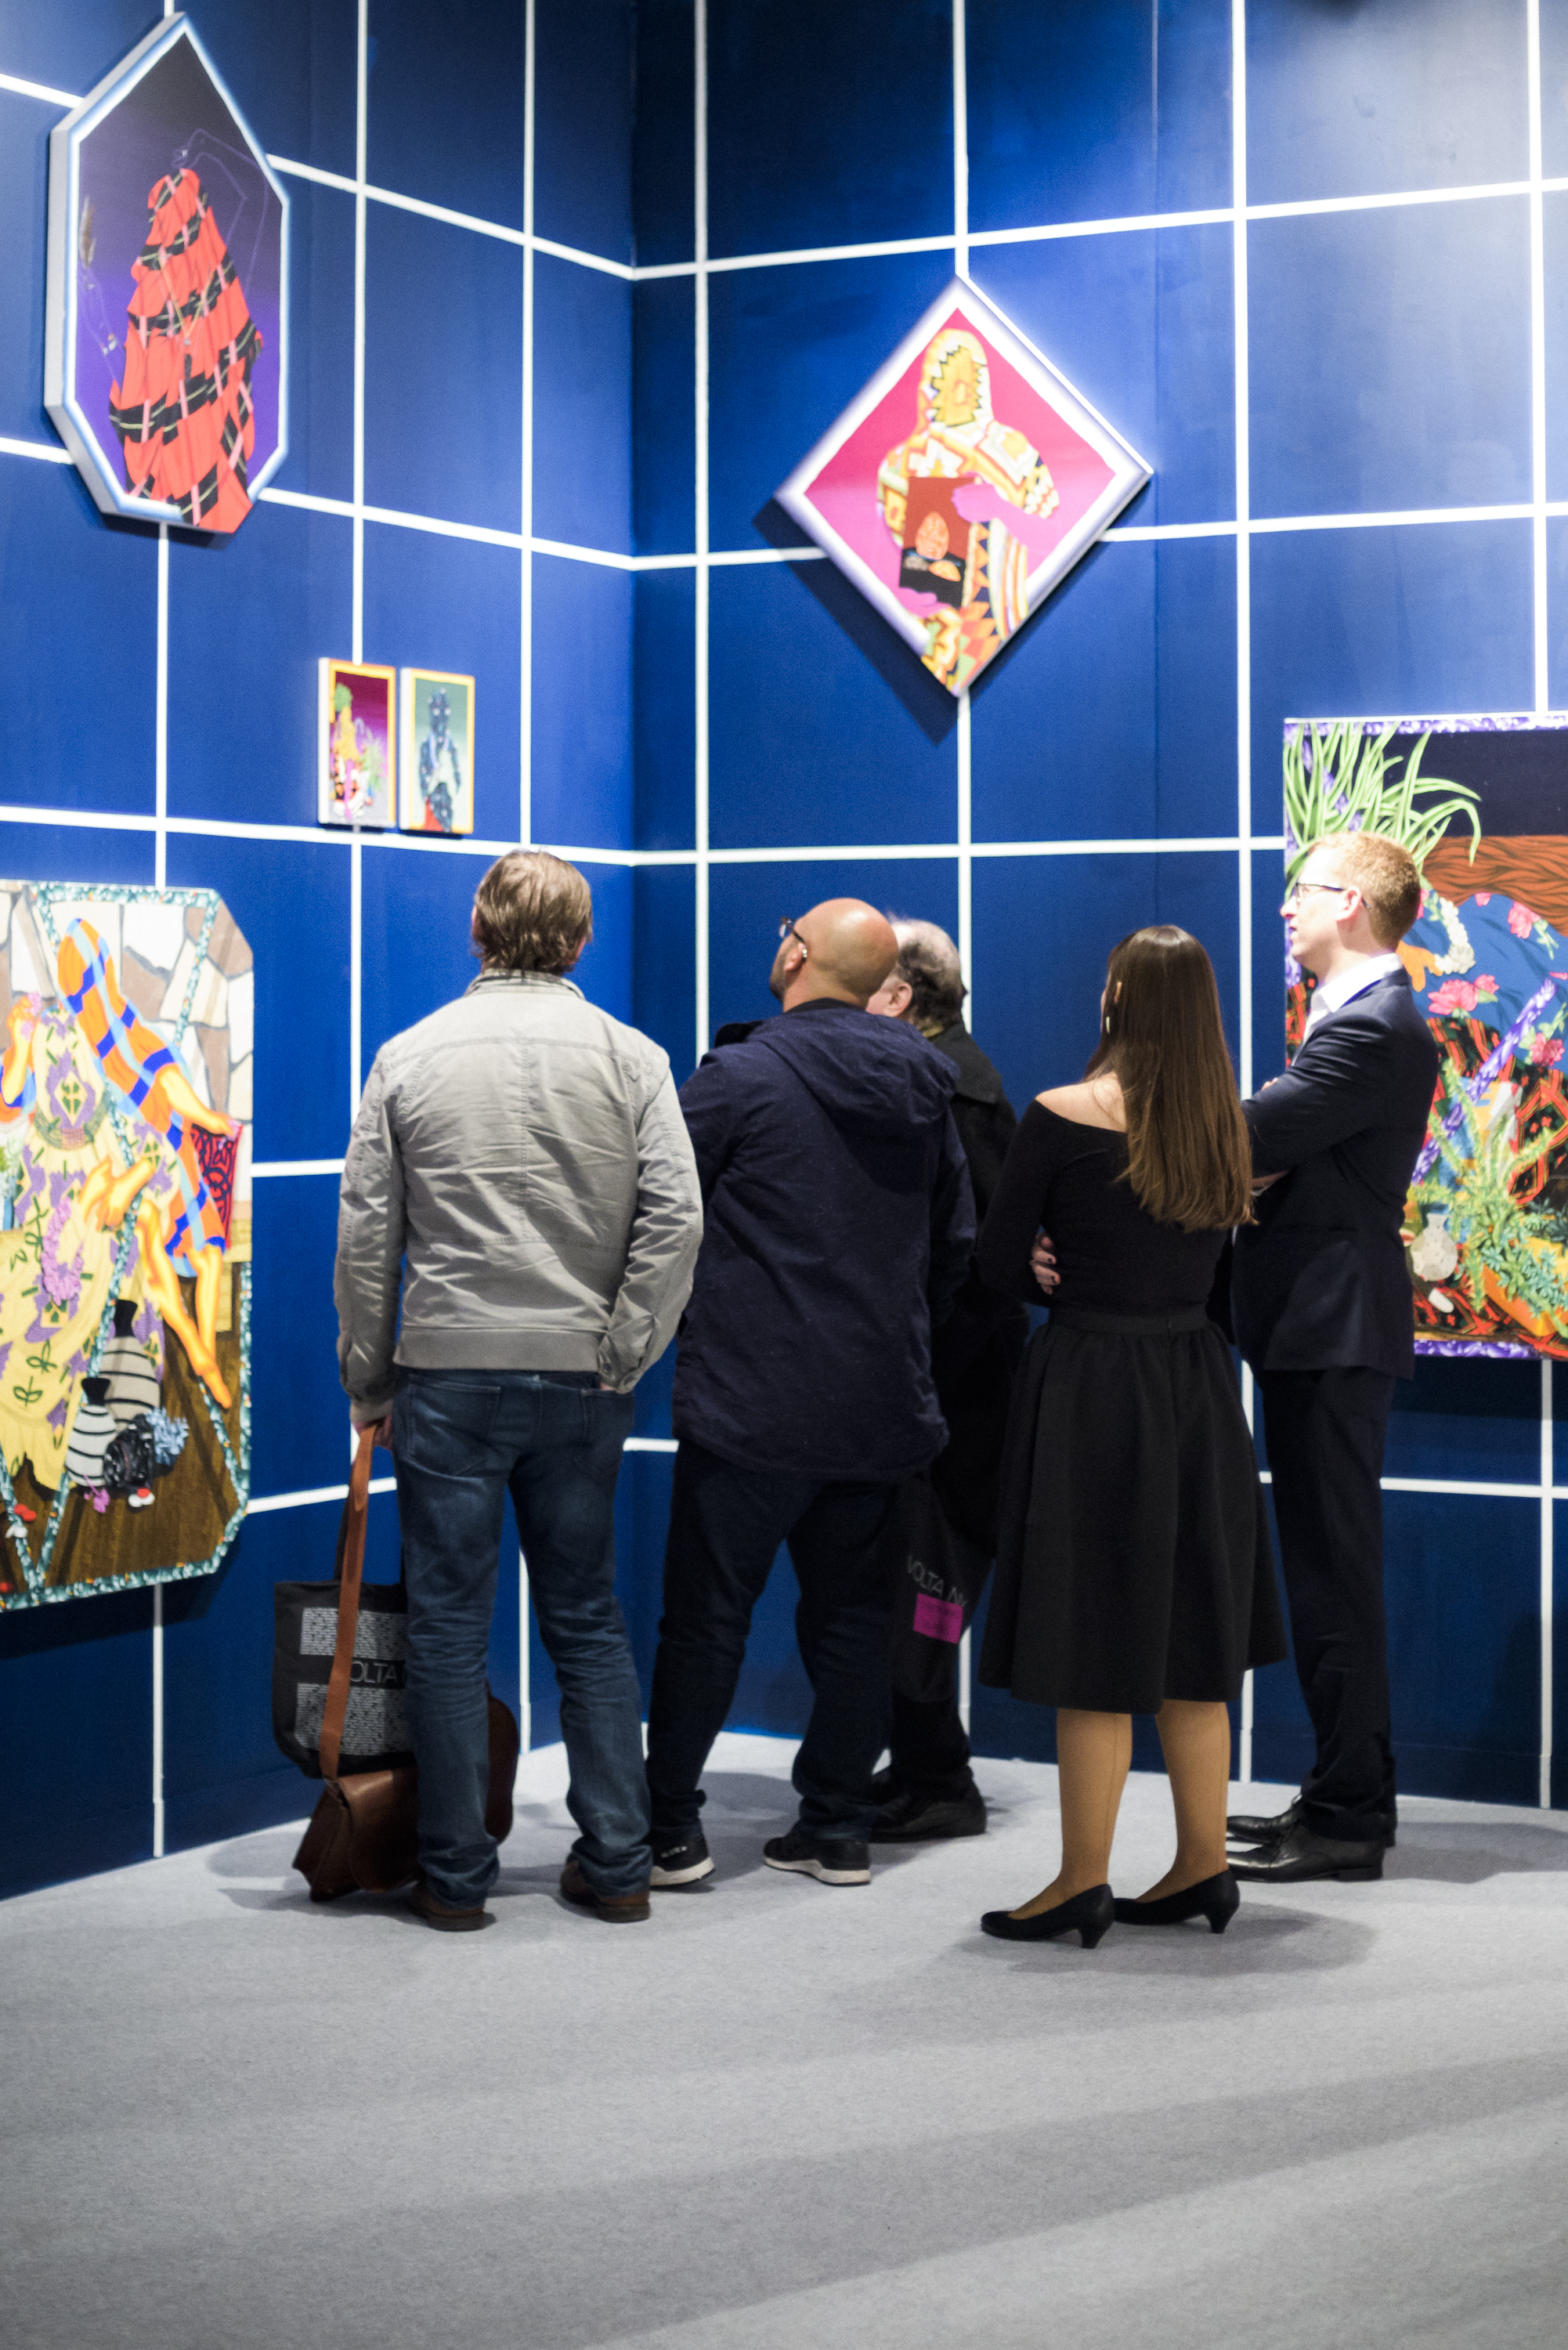 GORDON GALLERY, WORK OF AMIR H. FALLAH, AT THE INVITATIONAL SOLO PROJECT FAIR FOR CONTEMPORARY ART AT PIER 90, ON MARCH 2ND, 2016.